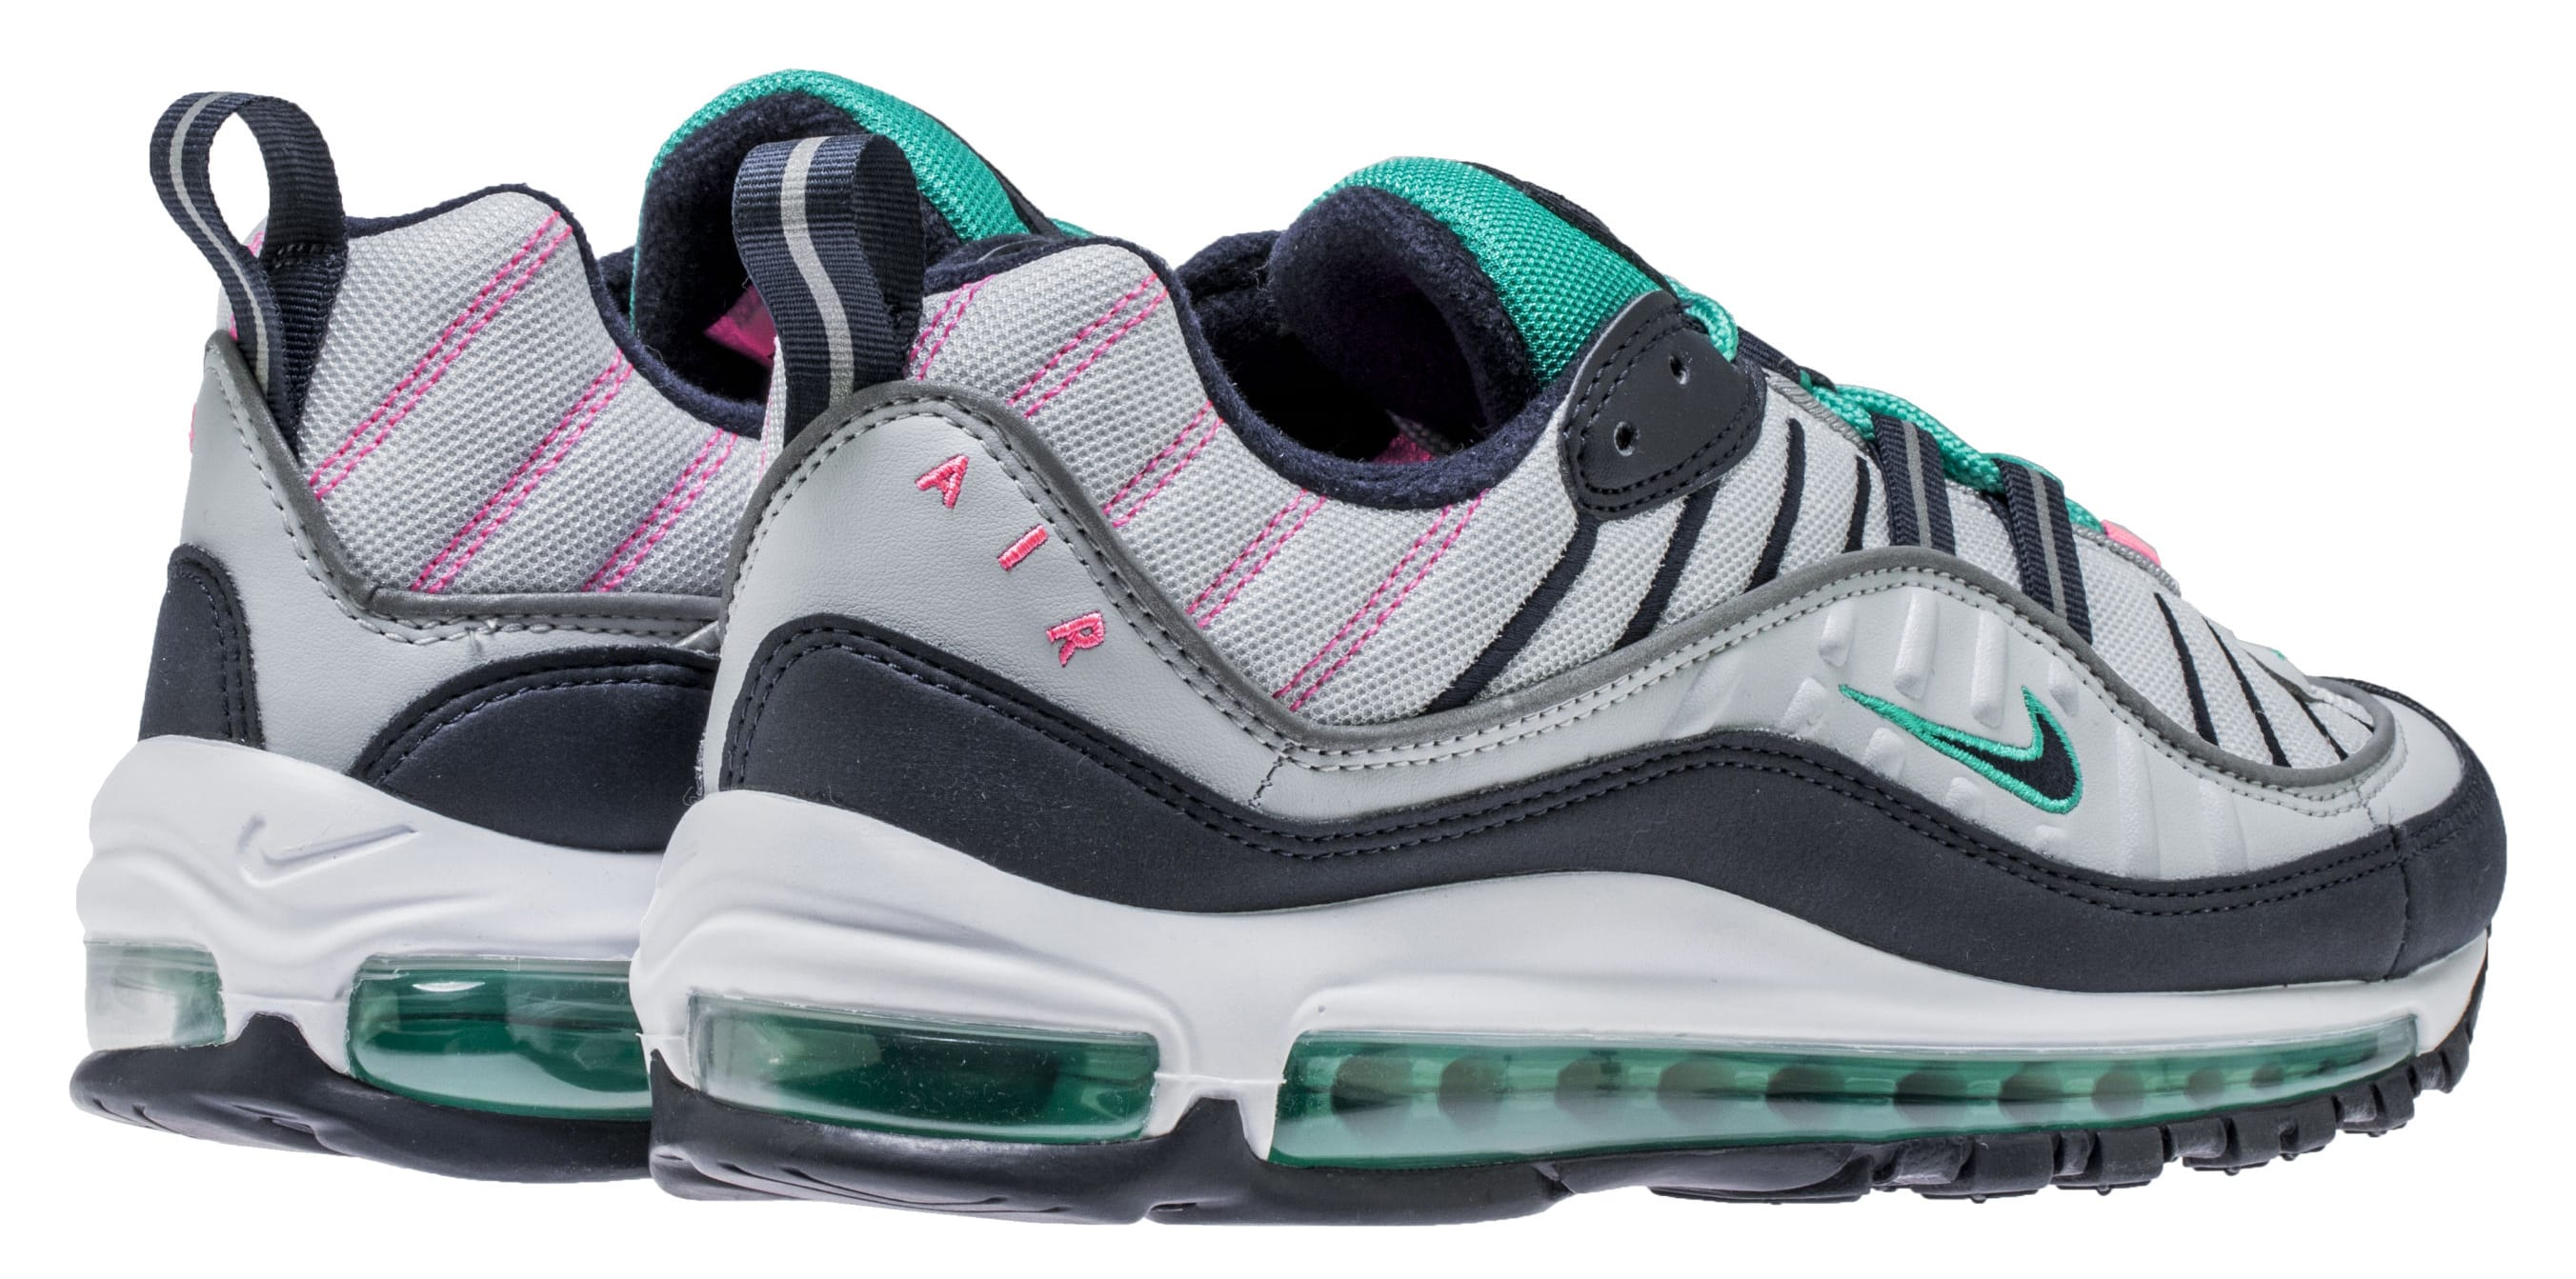 Nike Air Max 98 'Pure Platinum/Obsidian/Kinetic Green' 640744-005 (Back Pair)